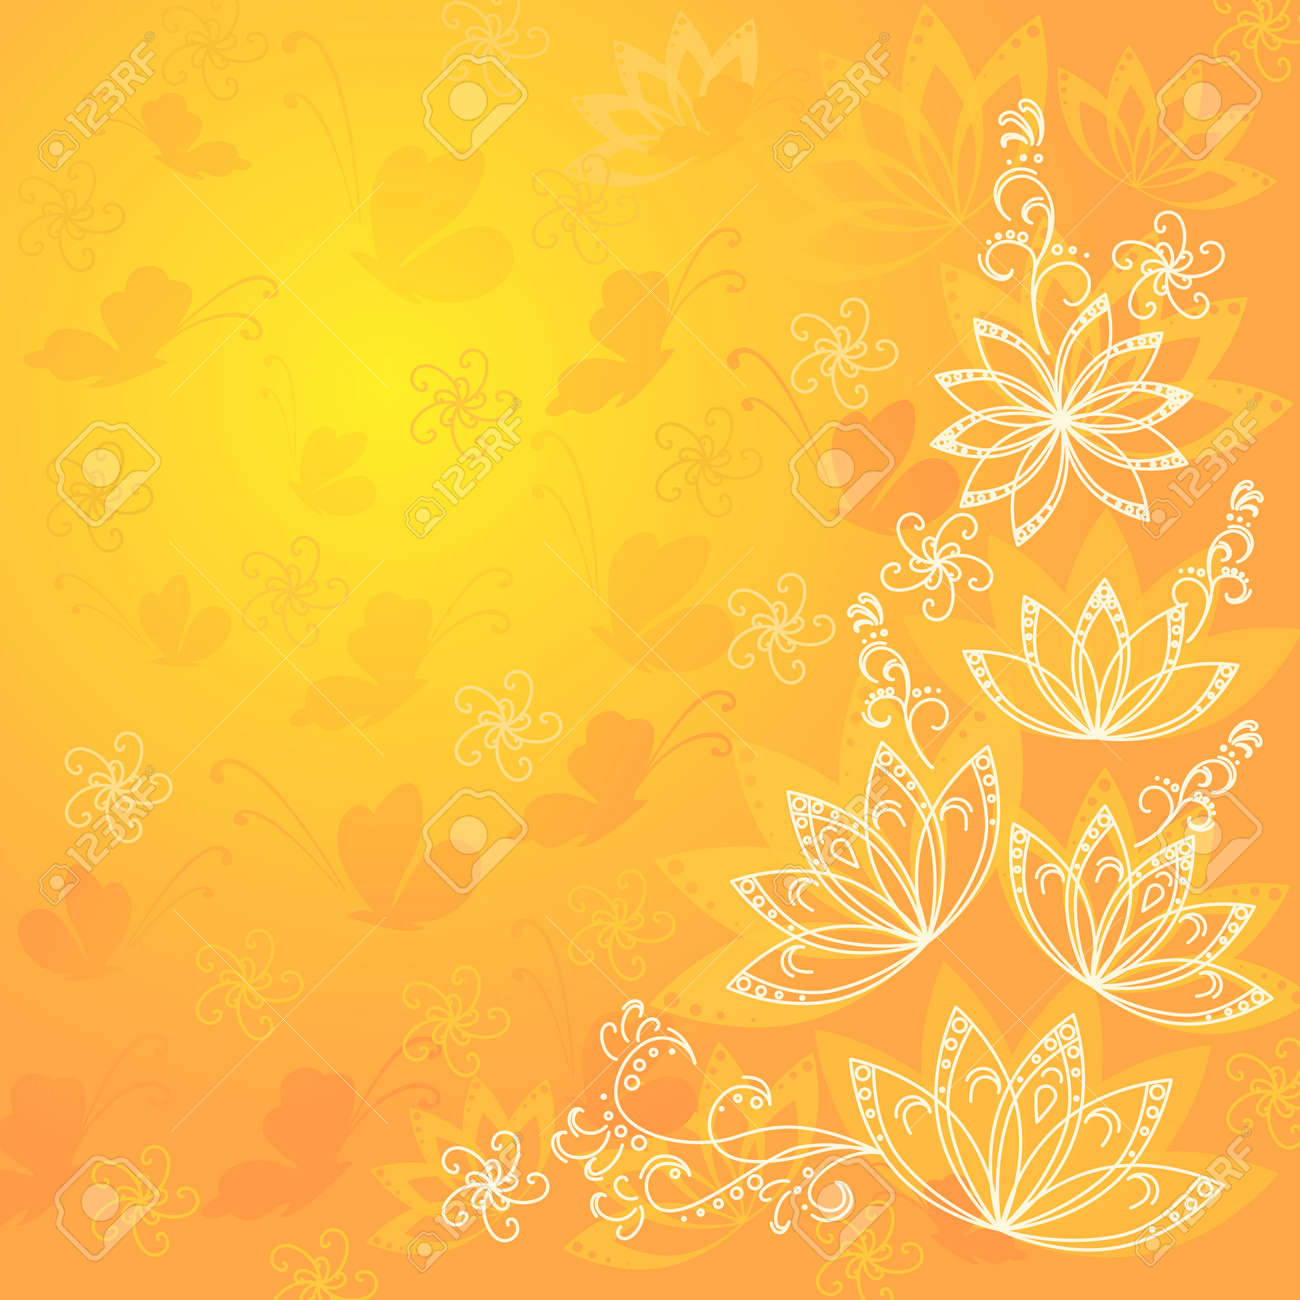 Abstract Orange And Yellow Floral Background With Flowers Contours ...